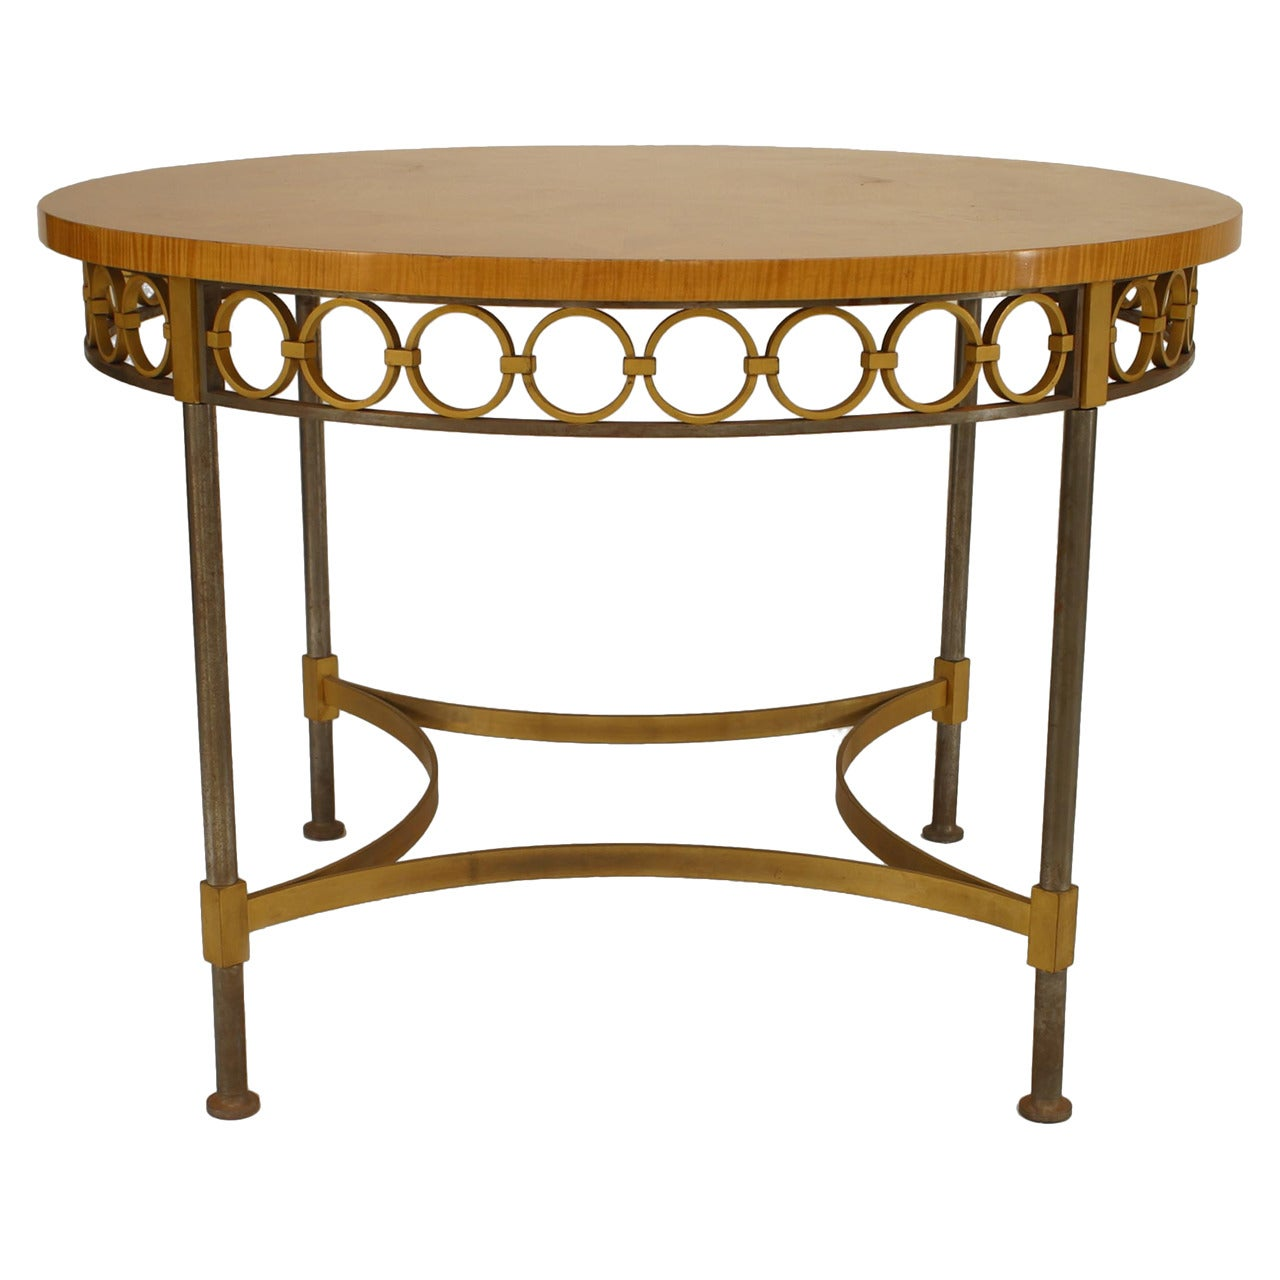 Art Deco French Maple Tea Table, Attributed to Arbus and Subes